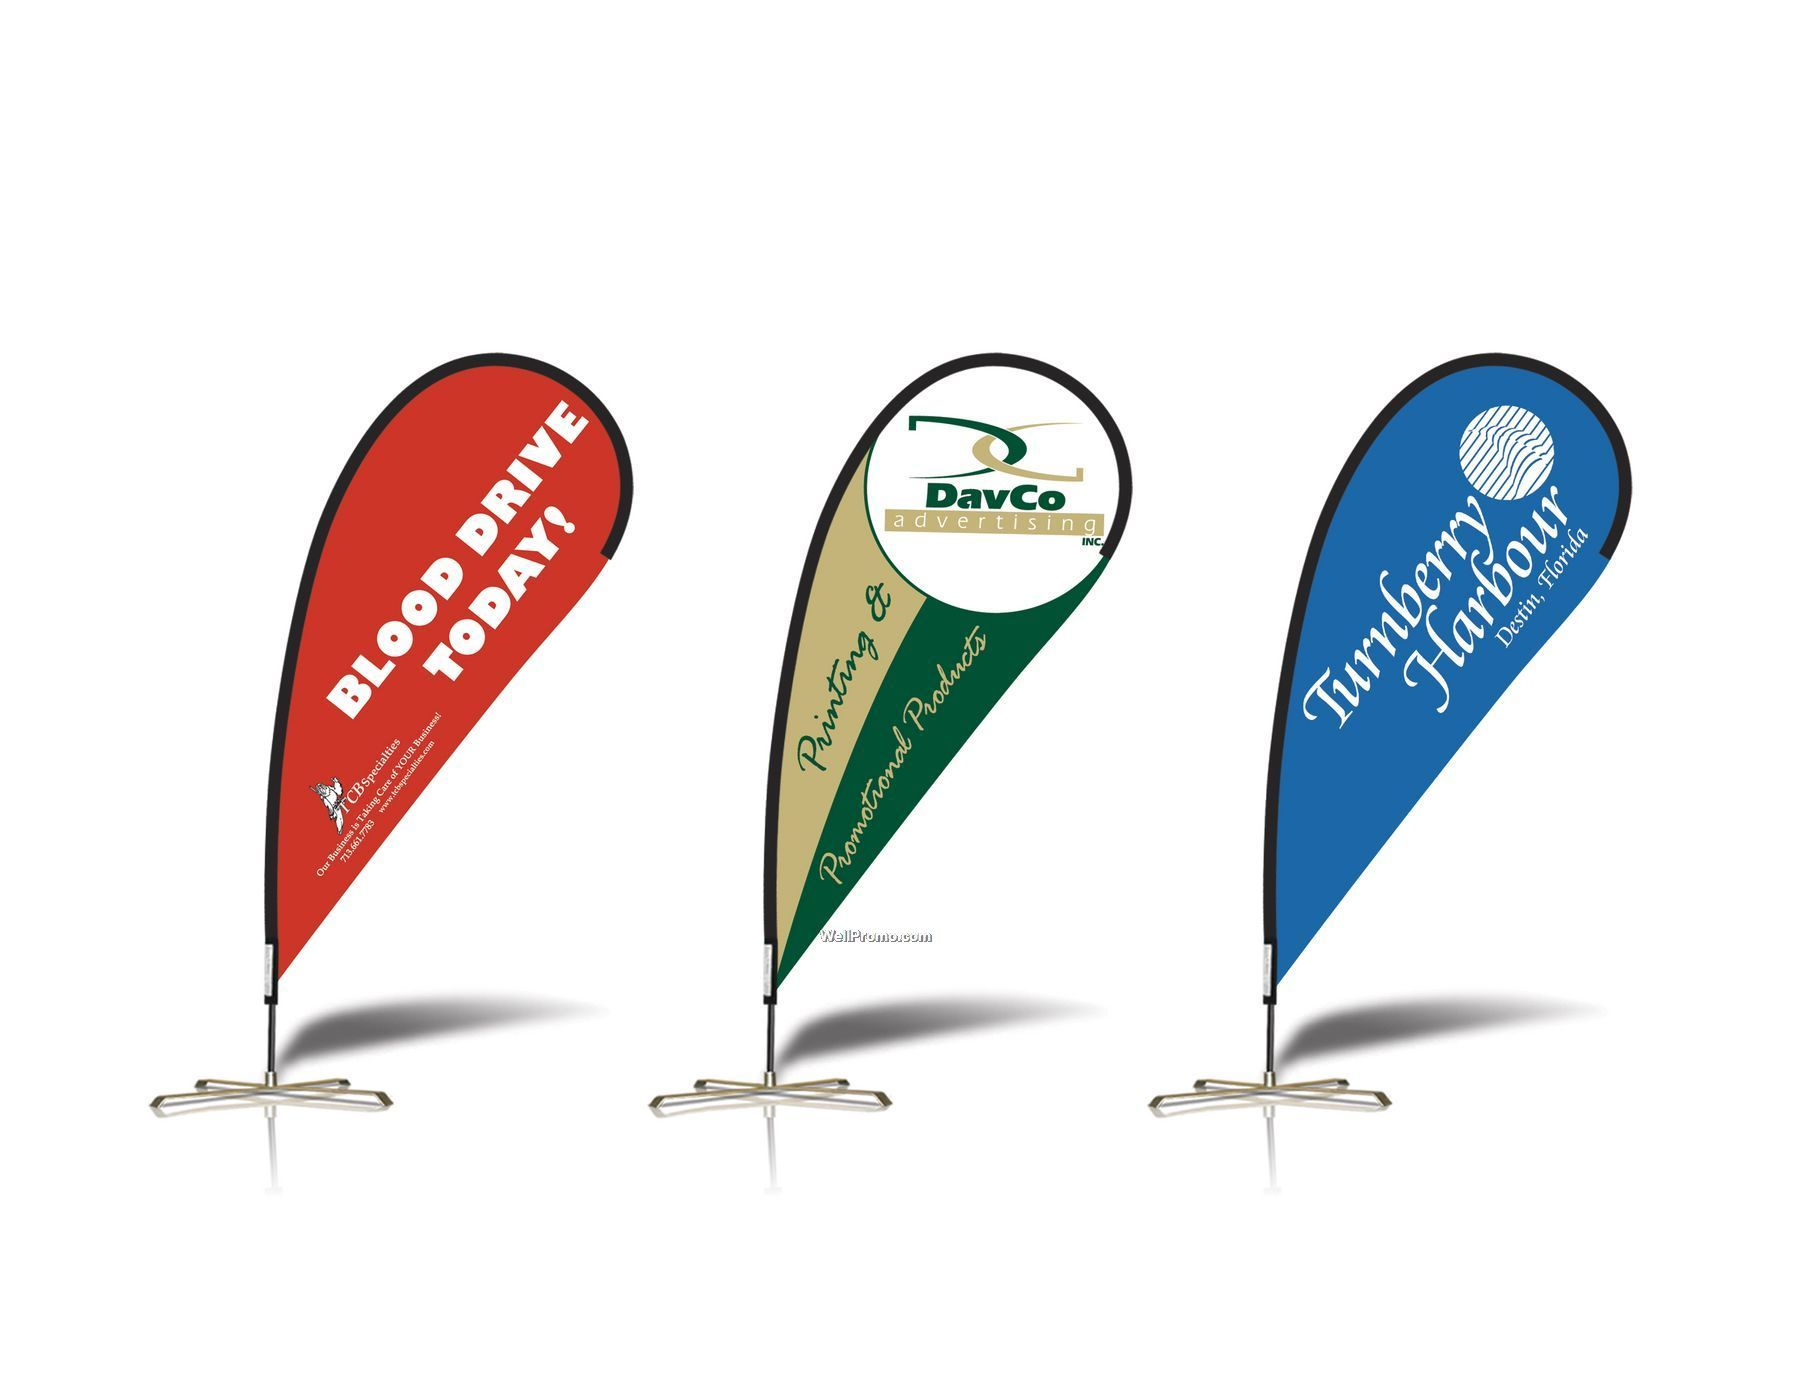 Custom Teardrop Banners | Flutter Flag | Flag Pole Signs